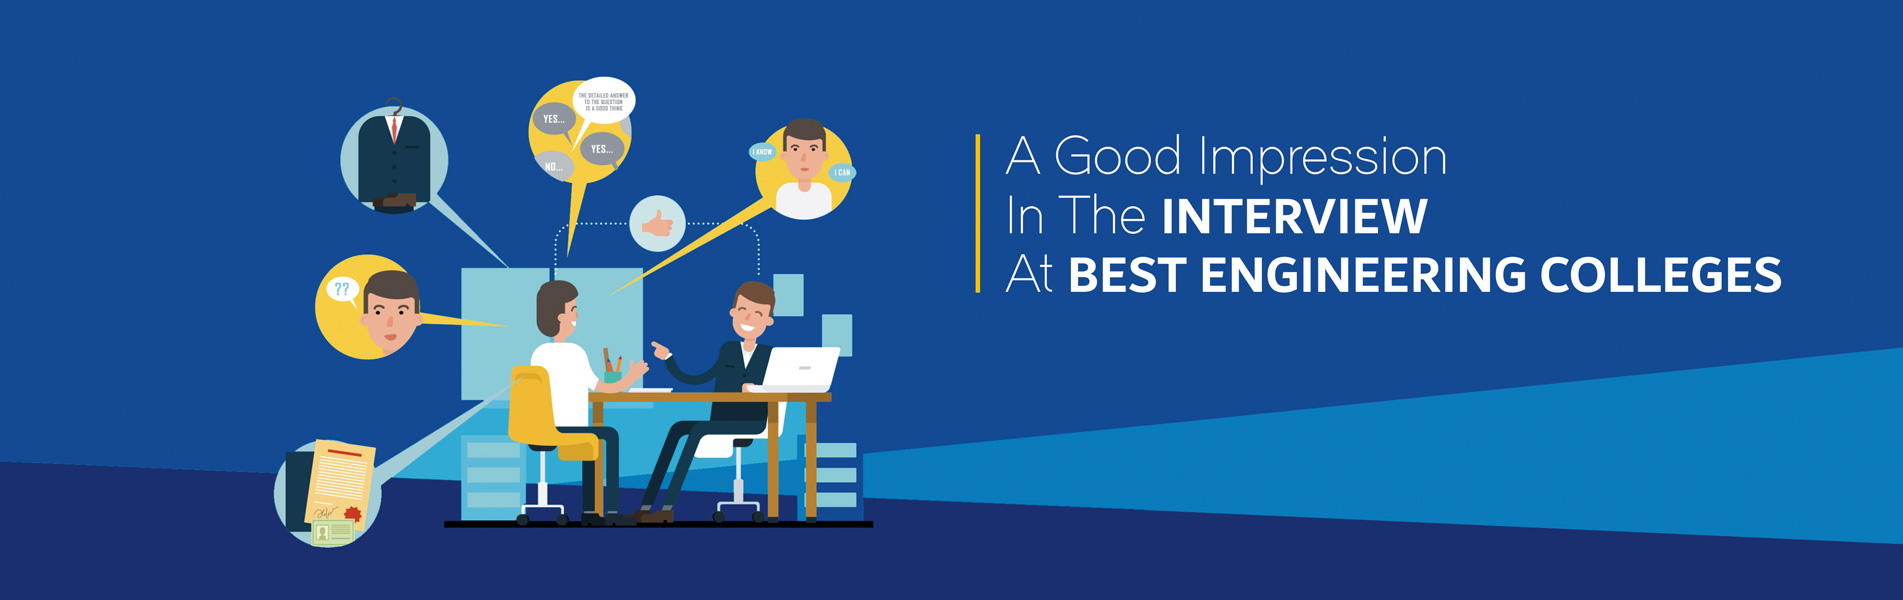 A-Good-Impression-in-The-Interview-at-Best-Engineering-Colleges